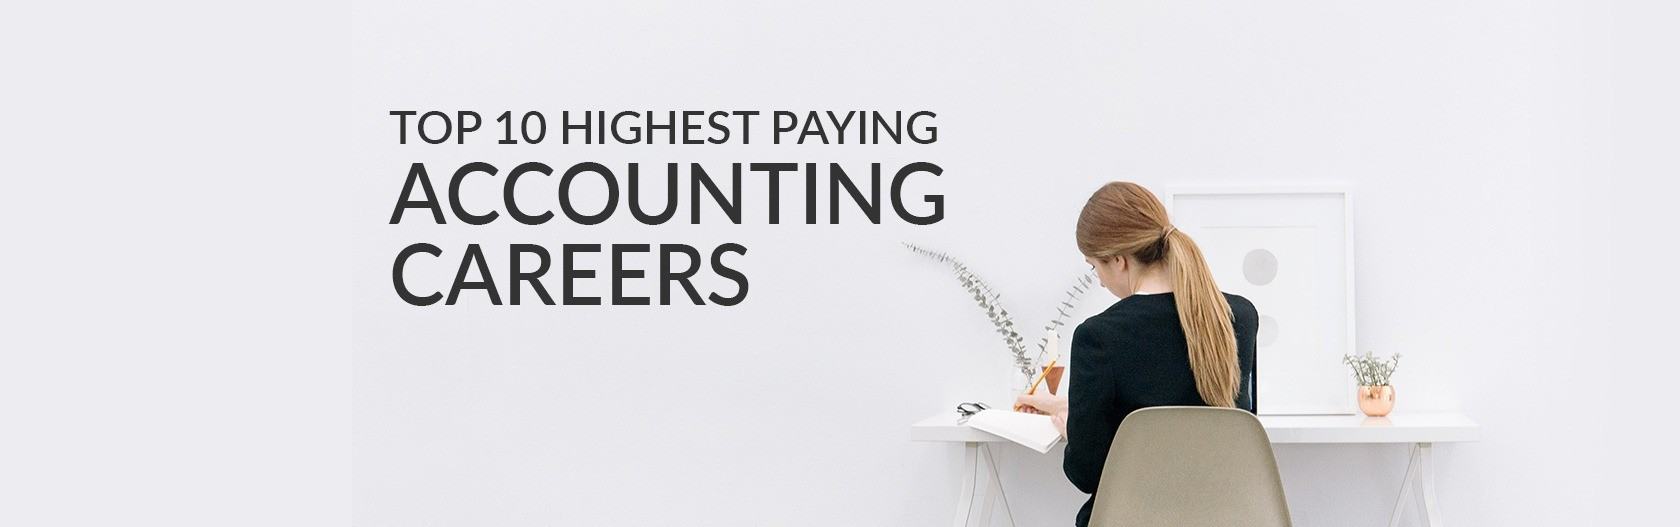 Top 10 Highest Paying Accounting Careers